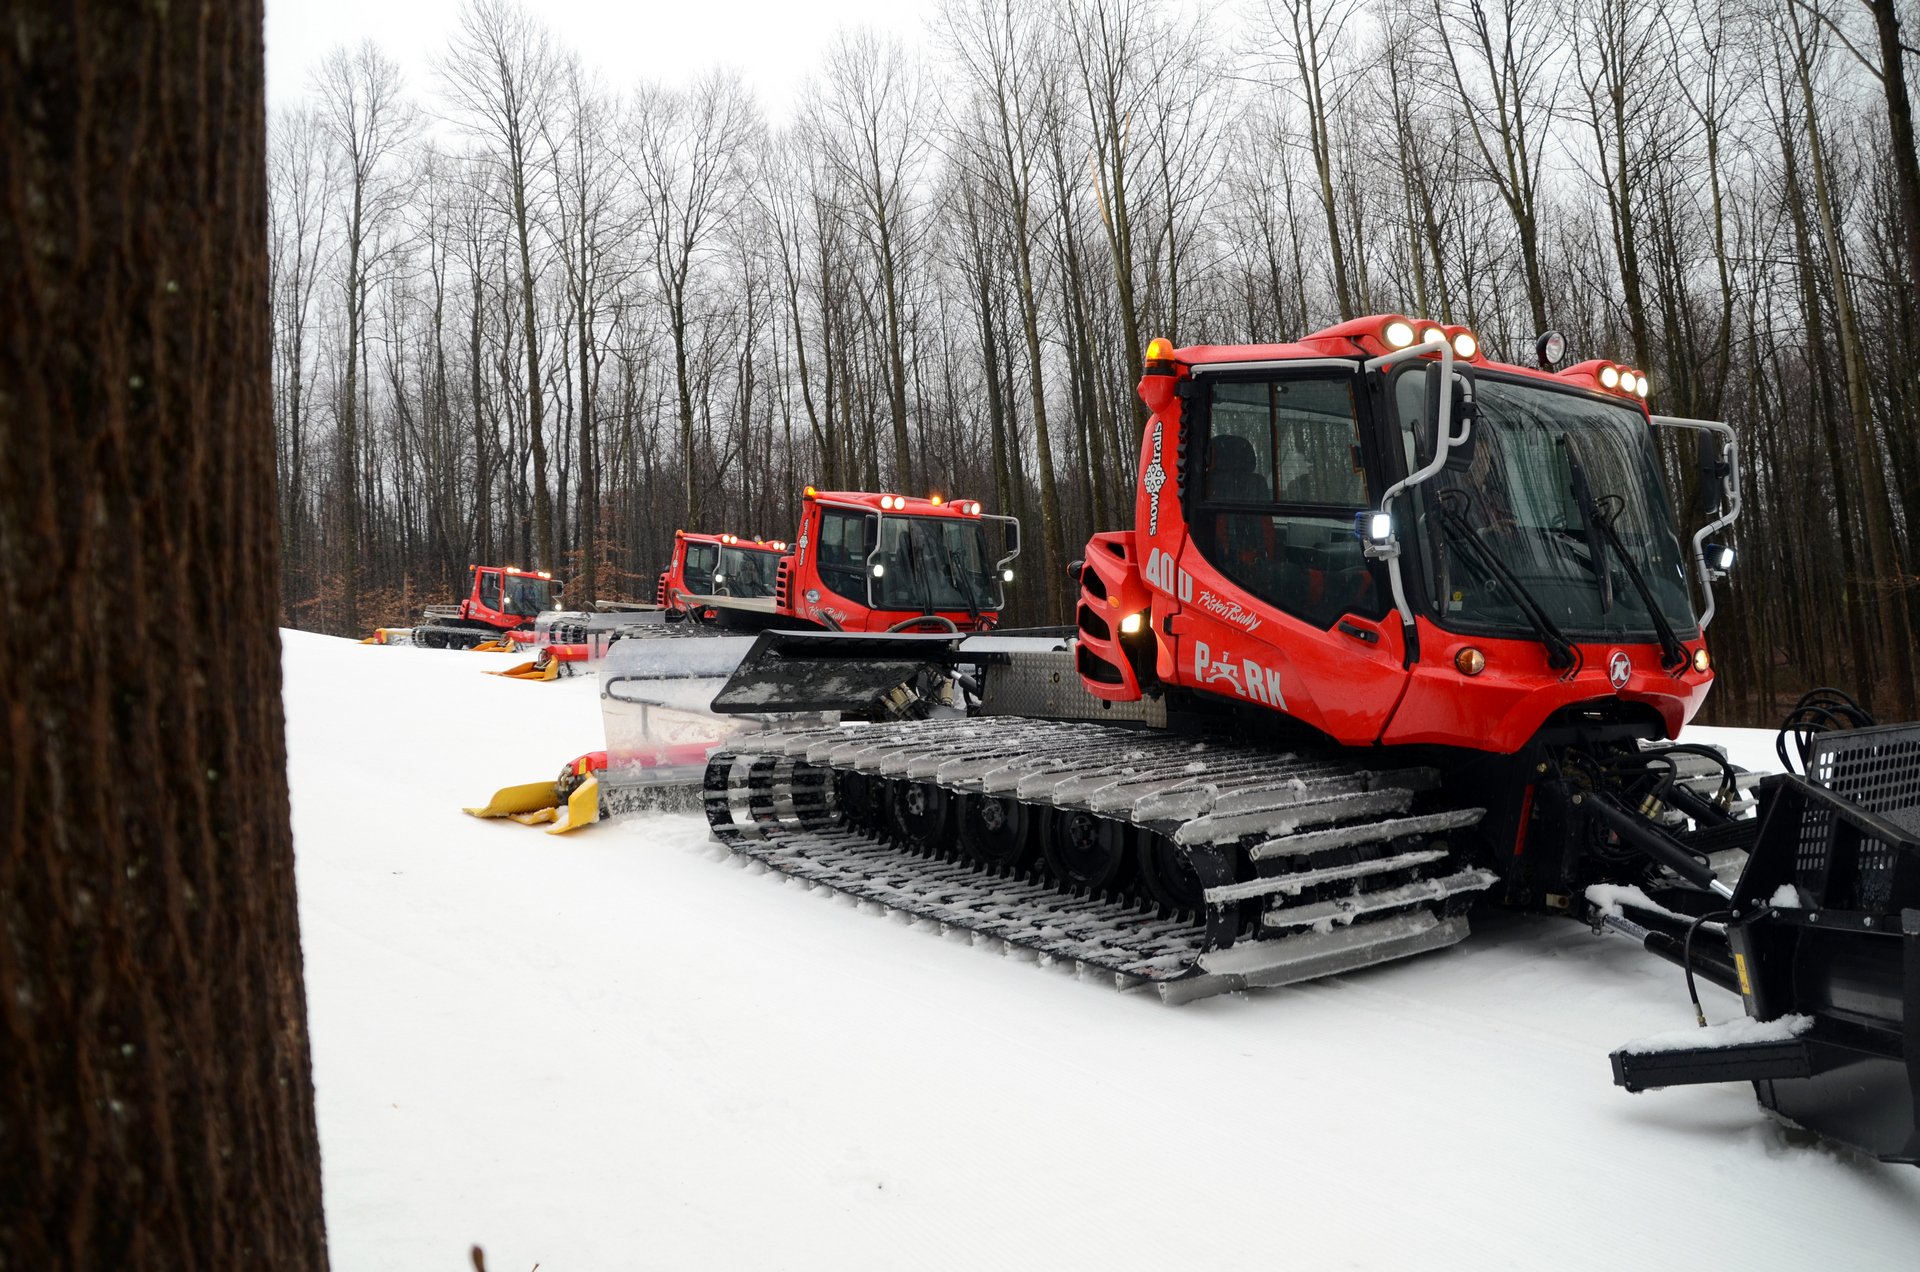 Snow Trails Snowmaking and Pisten Bully Snow Cat Grooming Fleet